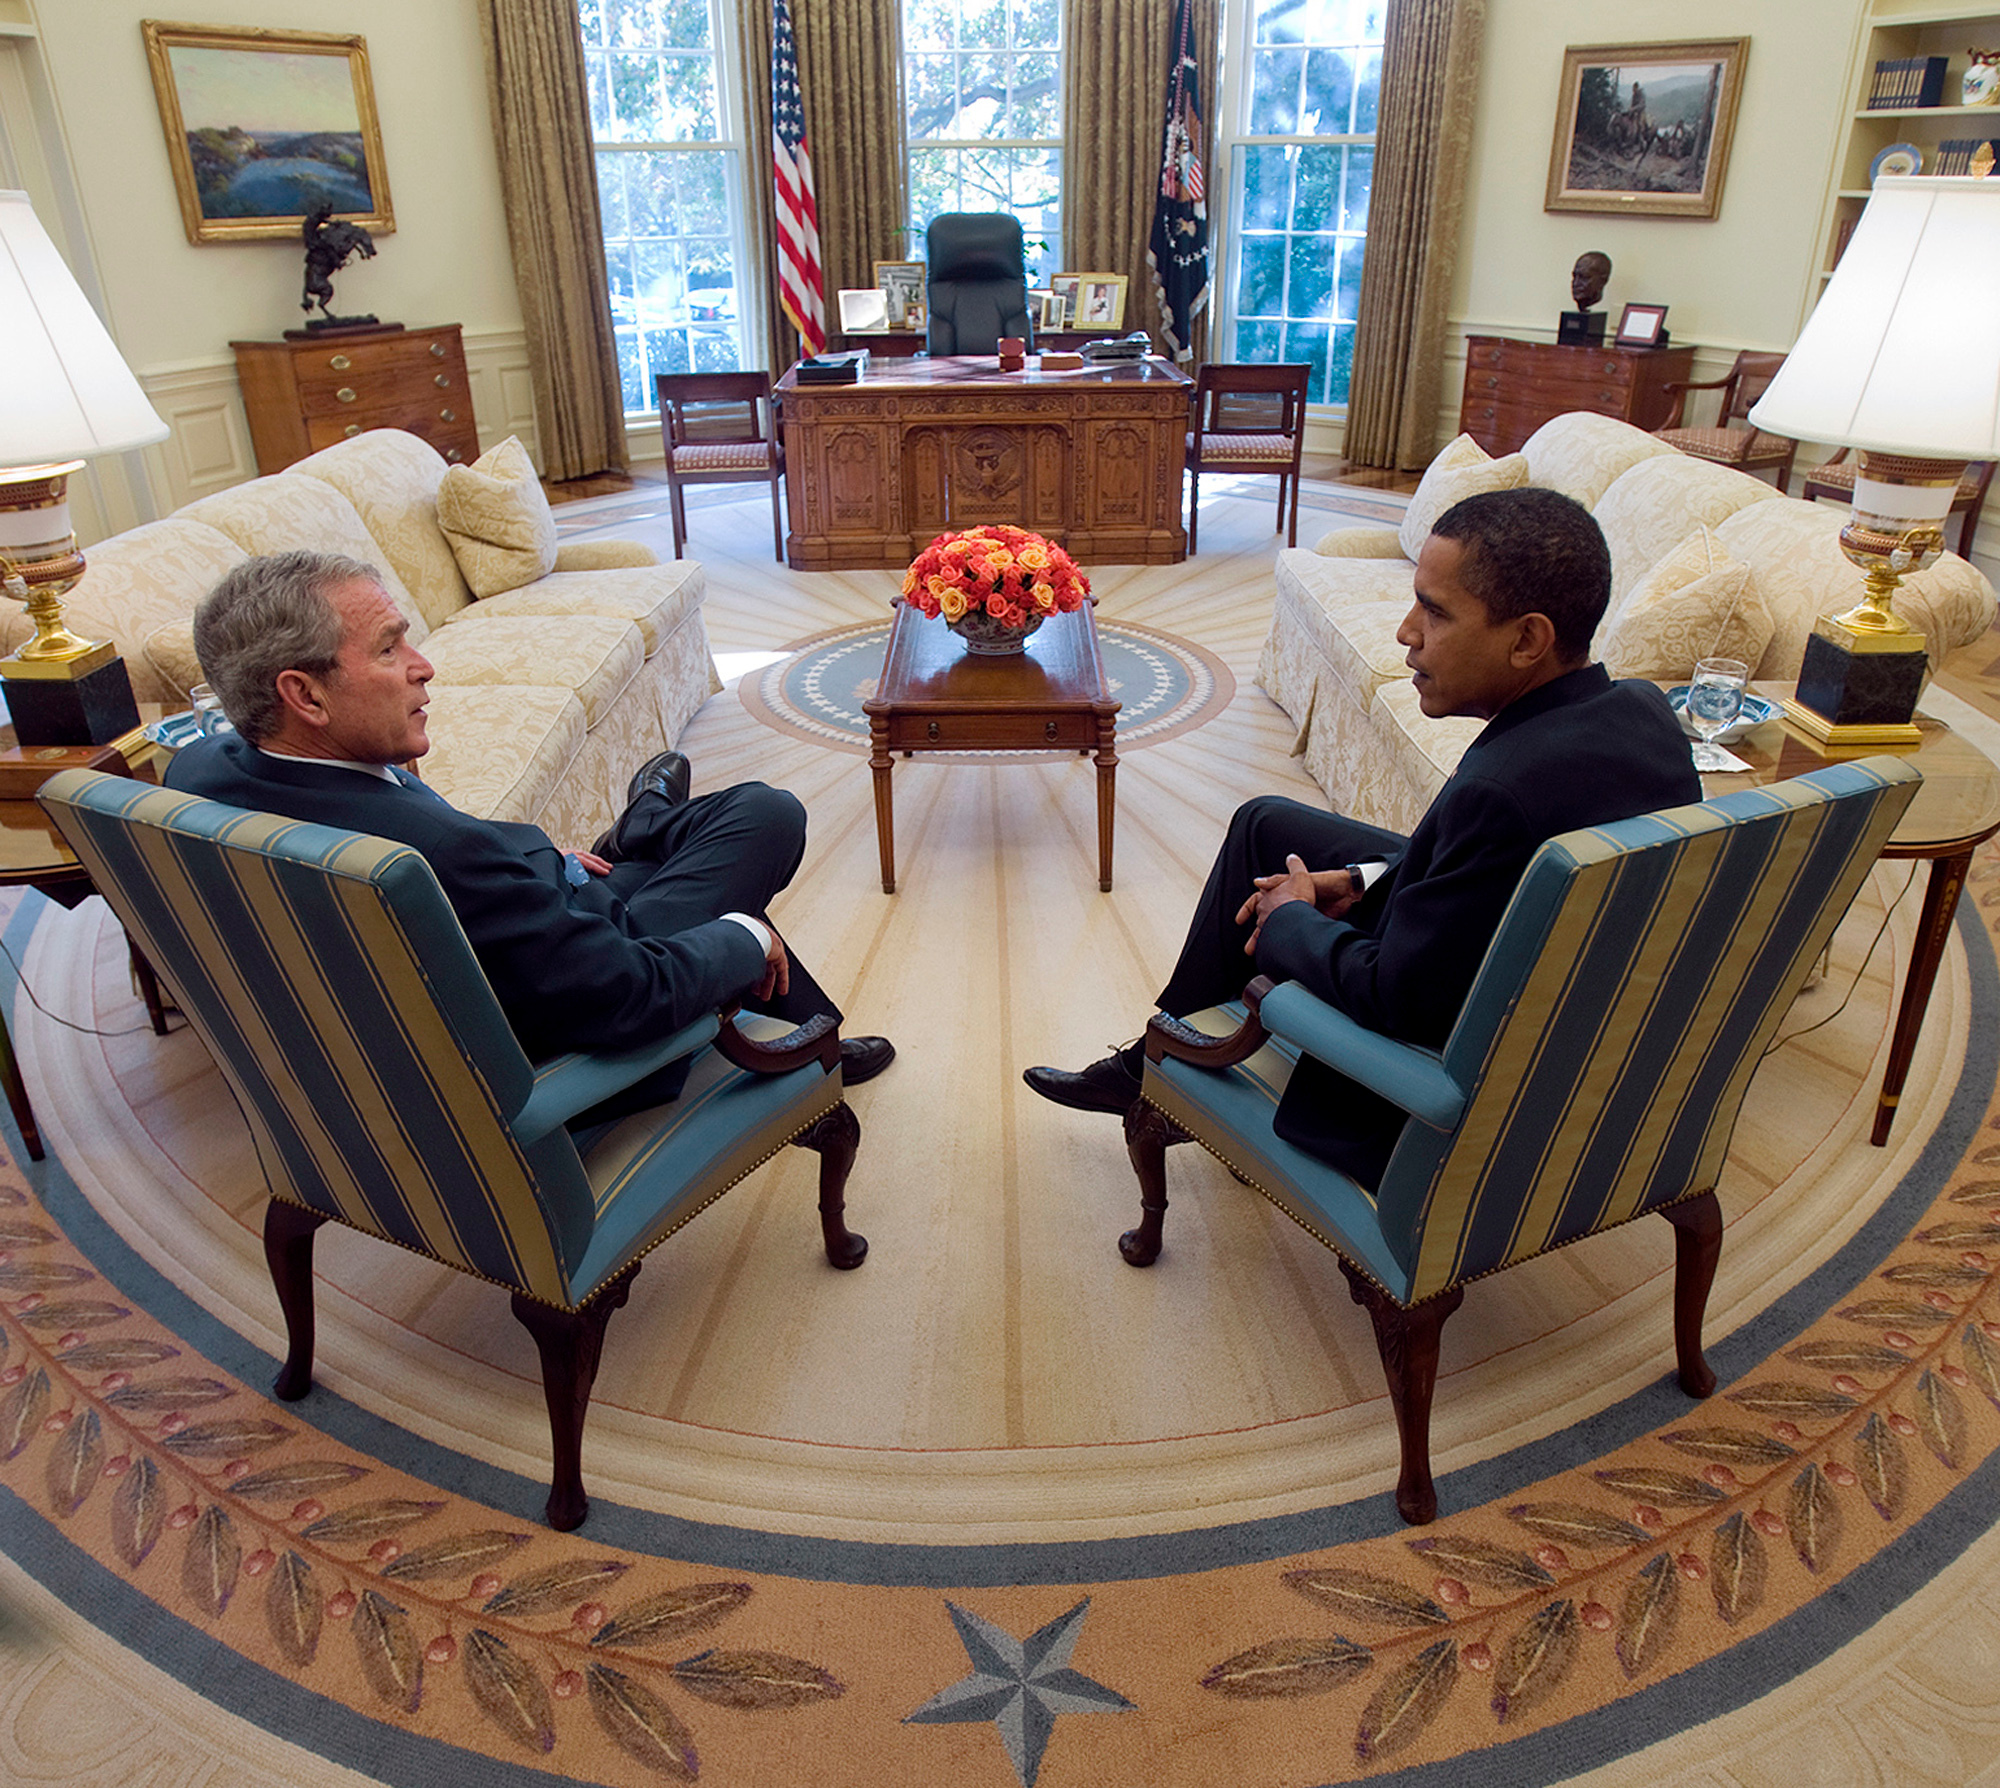 File:President George W. Bush and Barack Obama meet in Oval Office.jpg